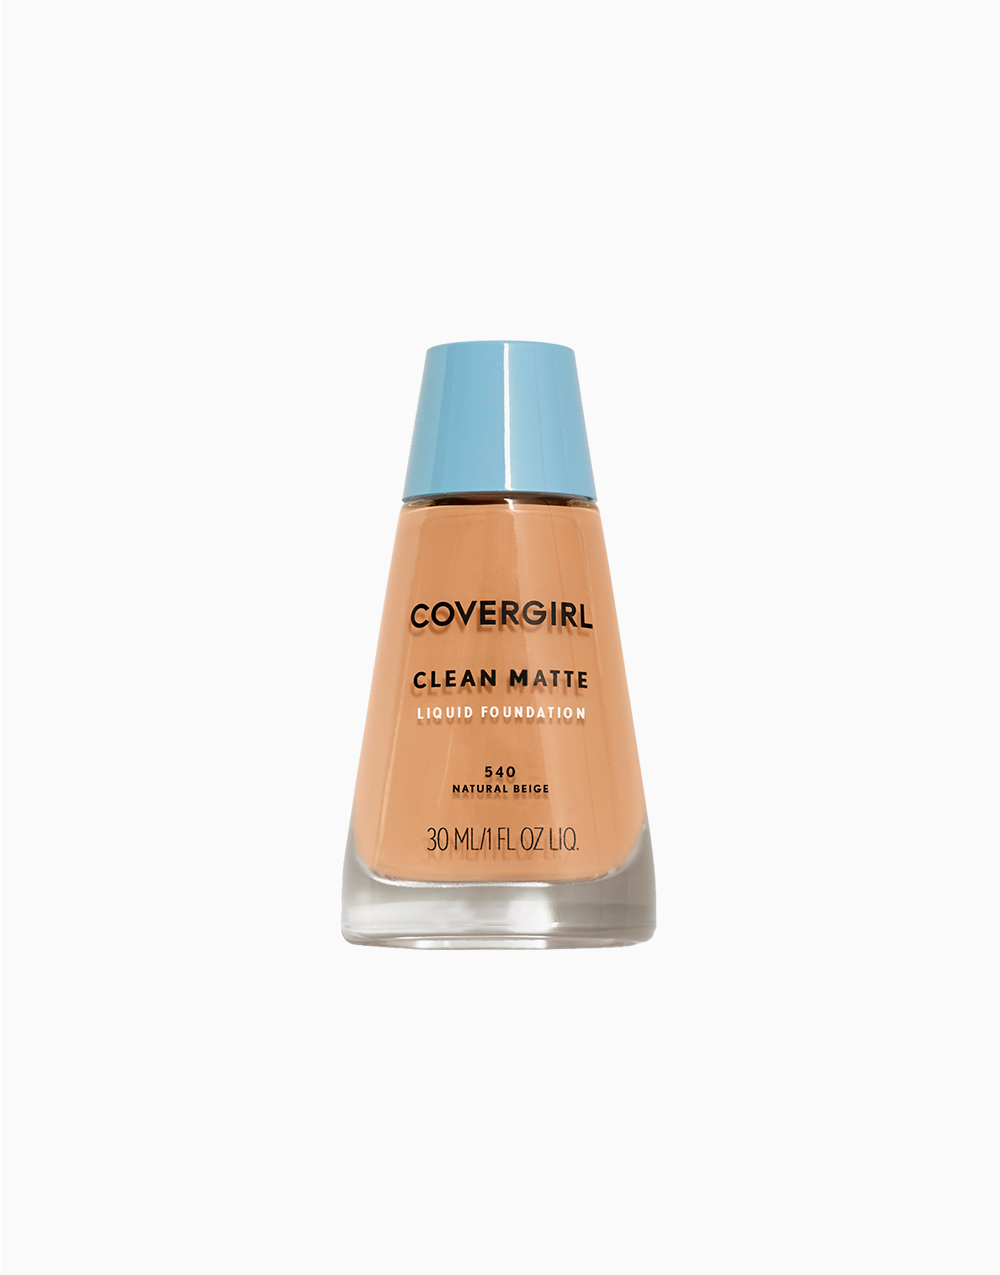 Clean Matte Liquid Foundation by CoverGirl | Natural Beige